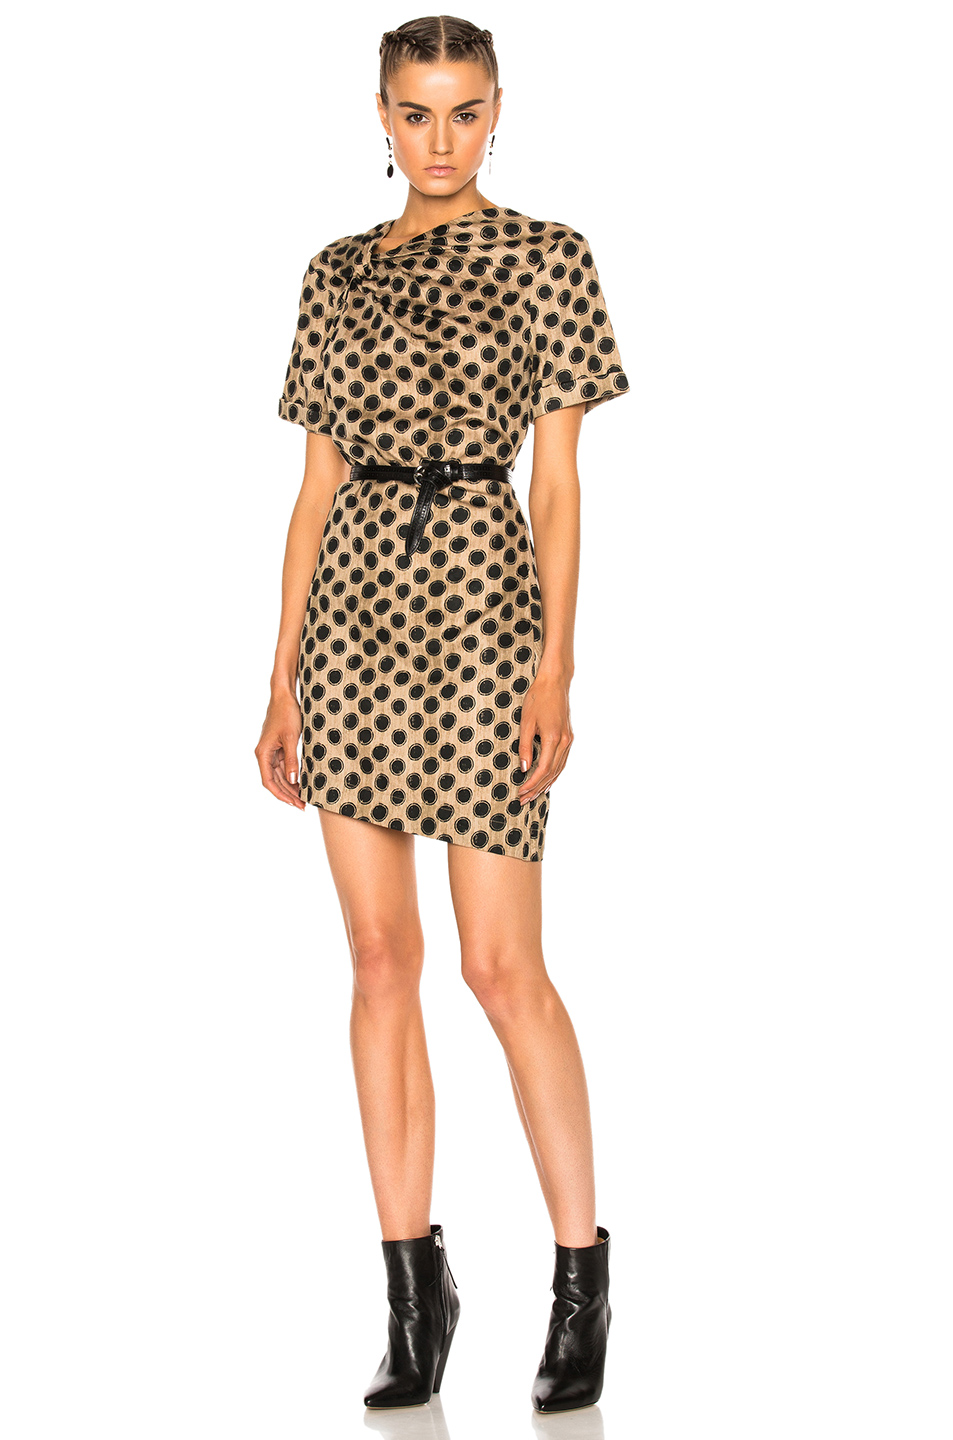 Isabel Marant Etoile Jade Printed Cotton Dress in Abstract,Black,Brown,Neutrals